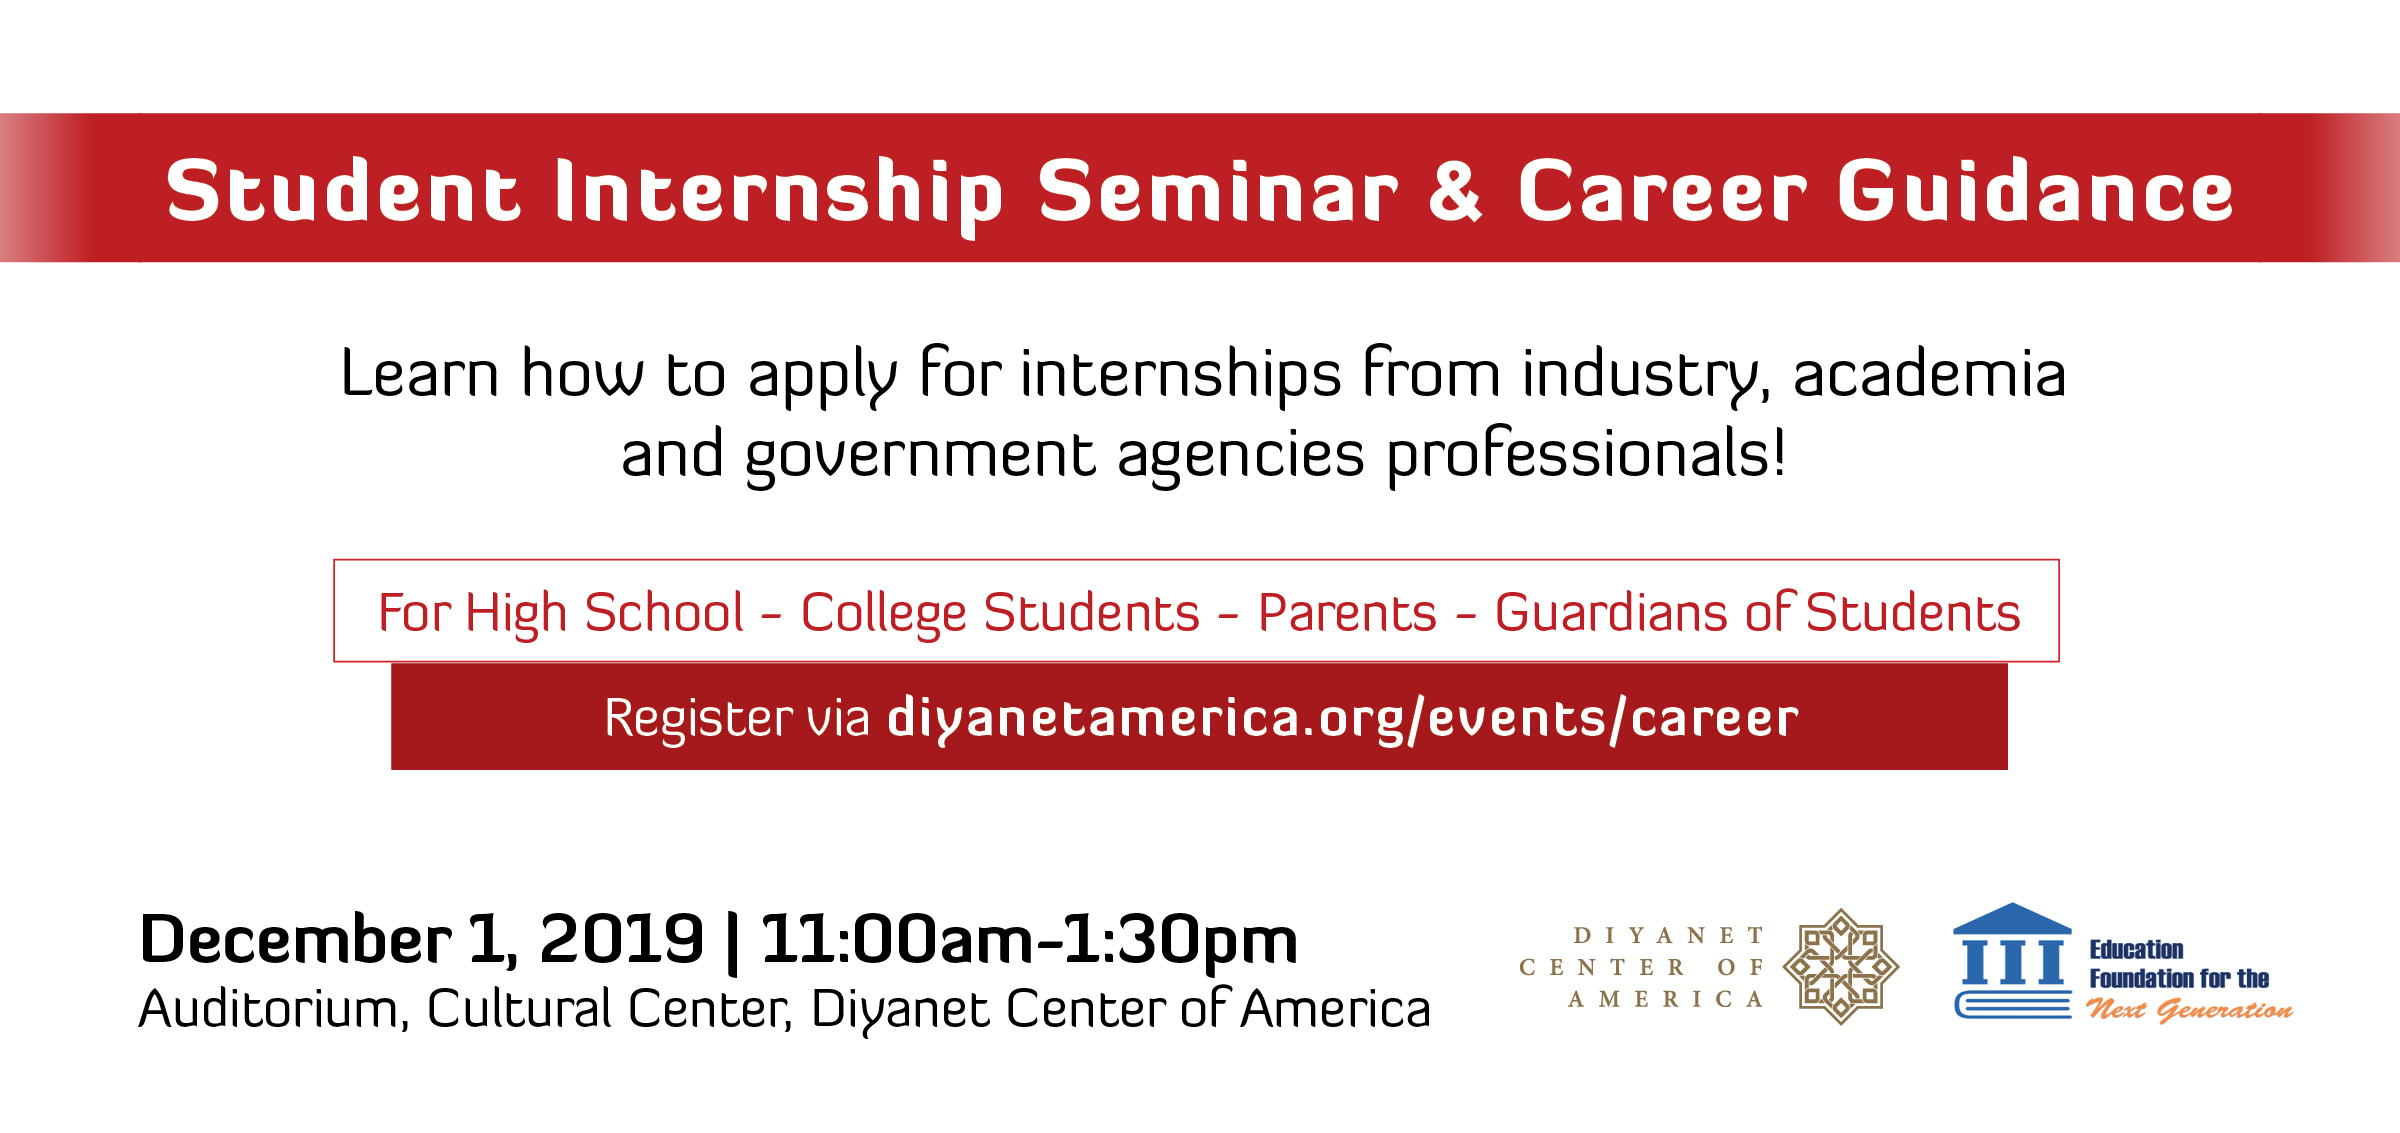 Student Internship Seminar & Career Guidance